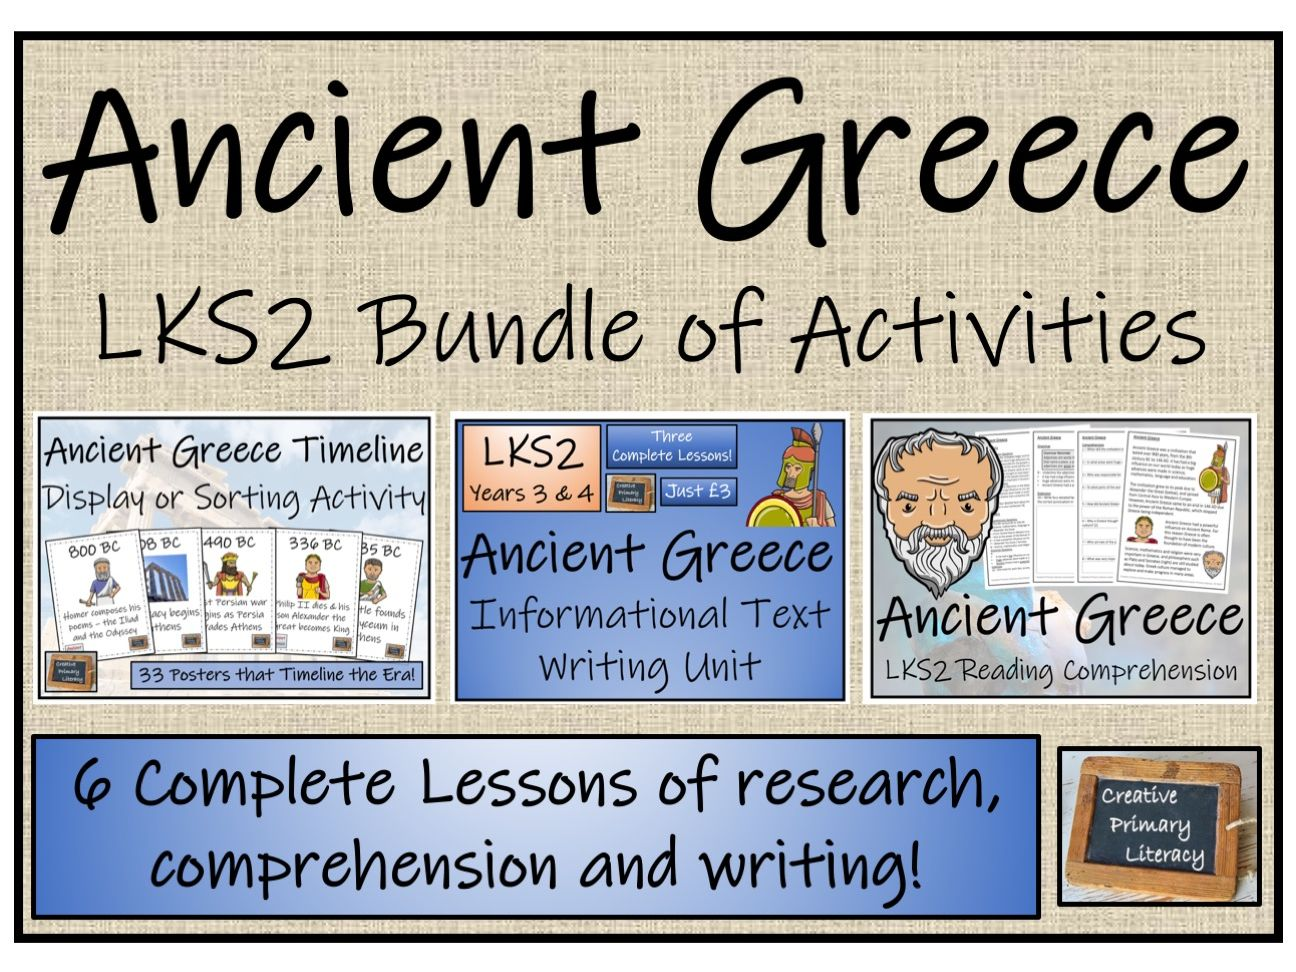 LKS2 Ancient Greece - Display, Research, Reading Comprehension & Writing Bundle